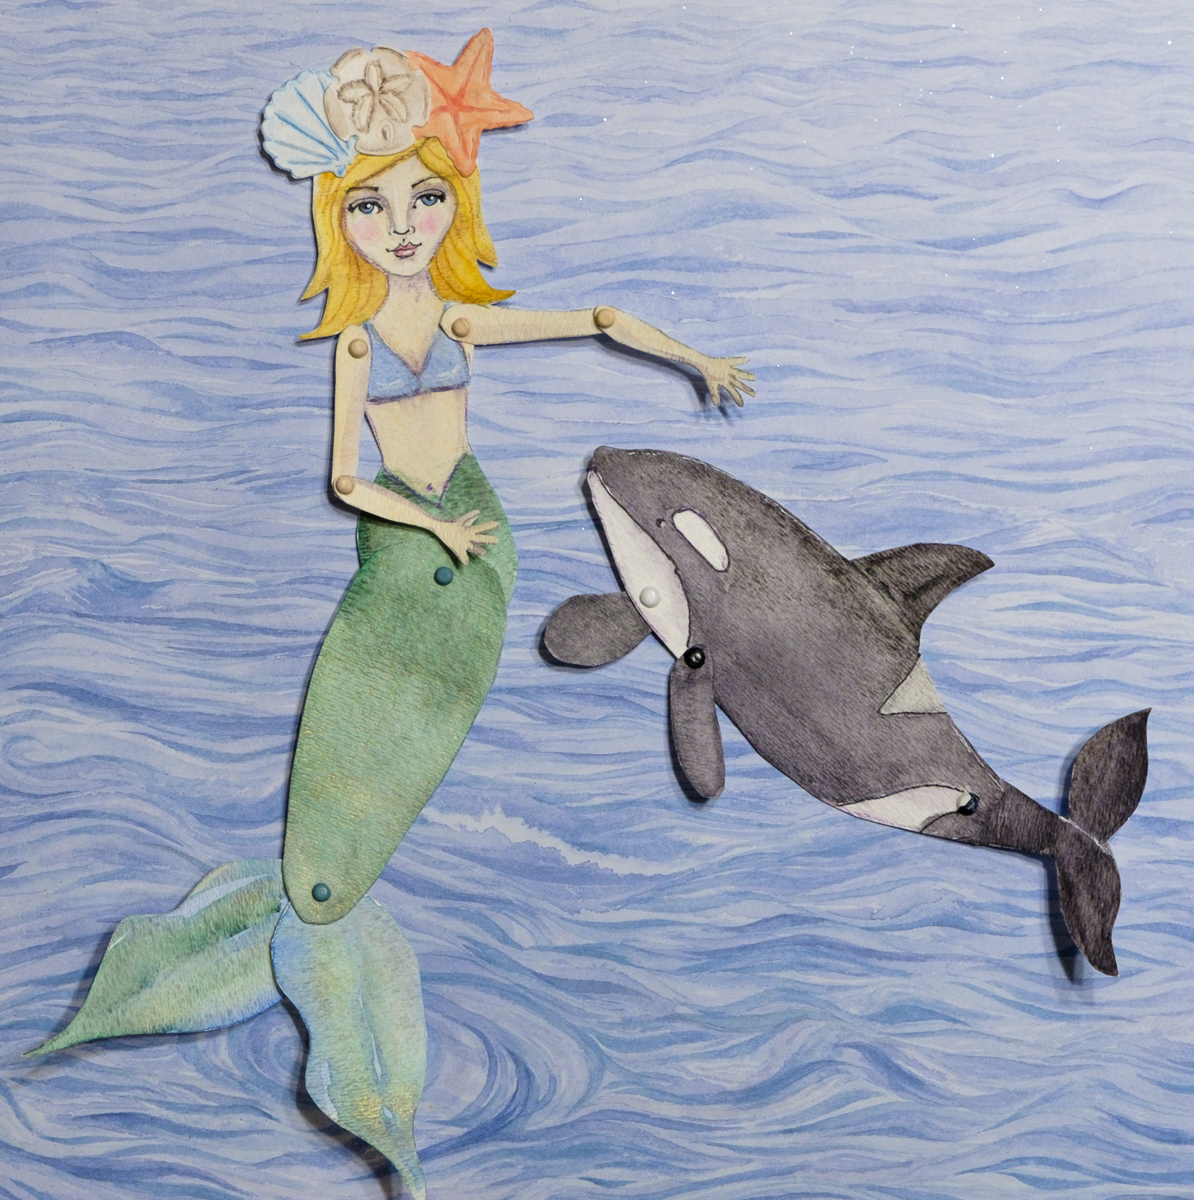 Polaris the Mermaid and her friend Dipper Paper Dolls